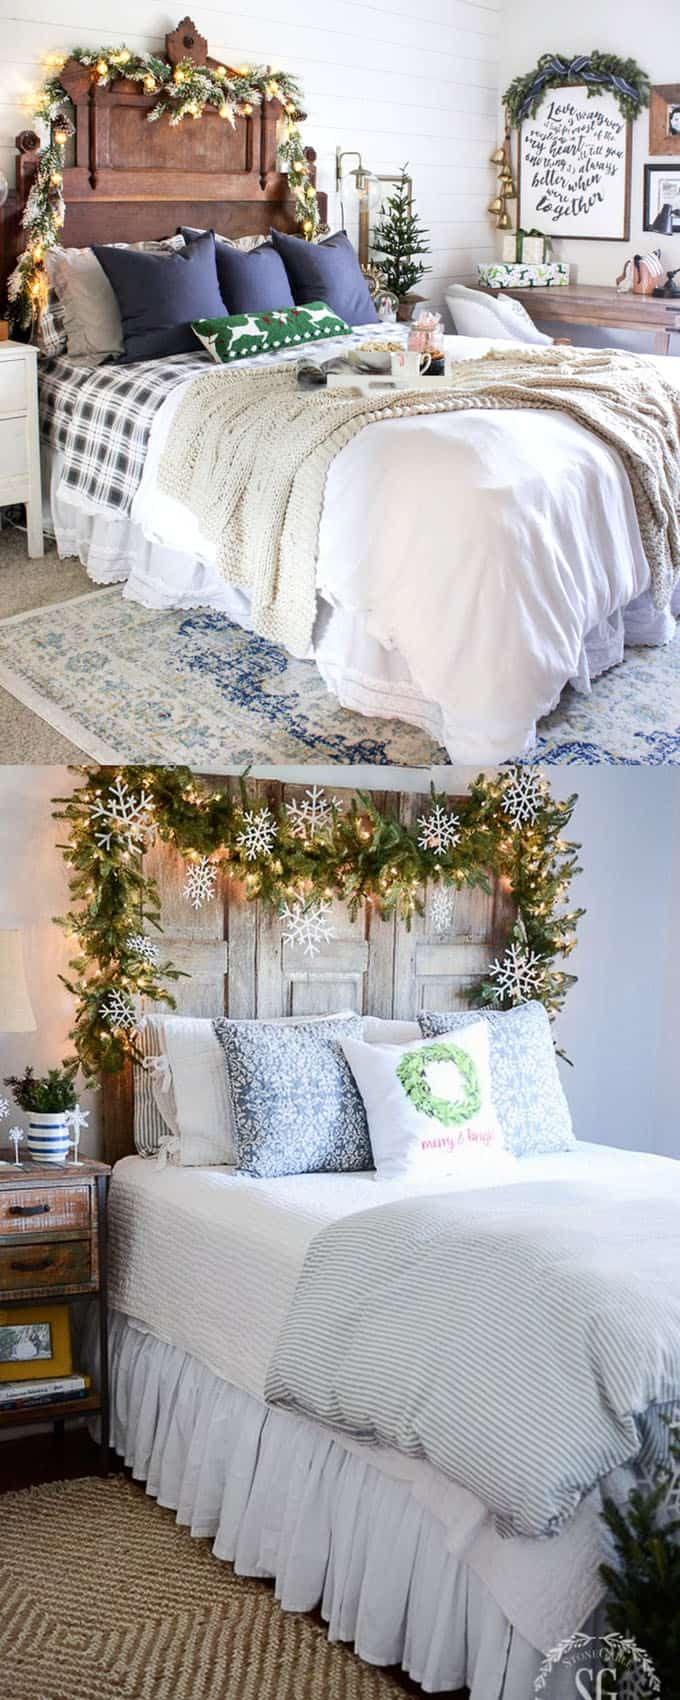 100 favorite christmas decorating ideas every room apieceofrainbow 13 - 100+ Favorite Christmas Decorating Ideas For Every Room in Your Home : Part 2